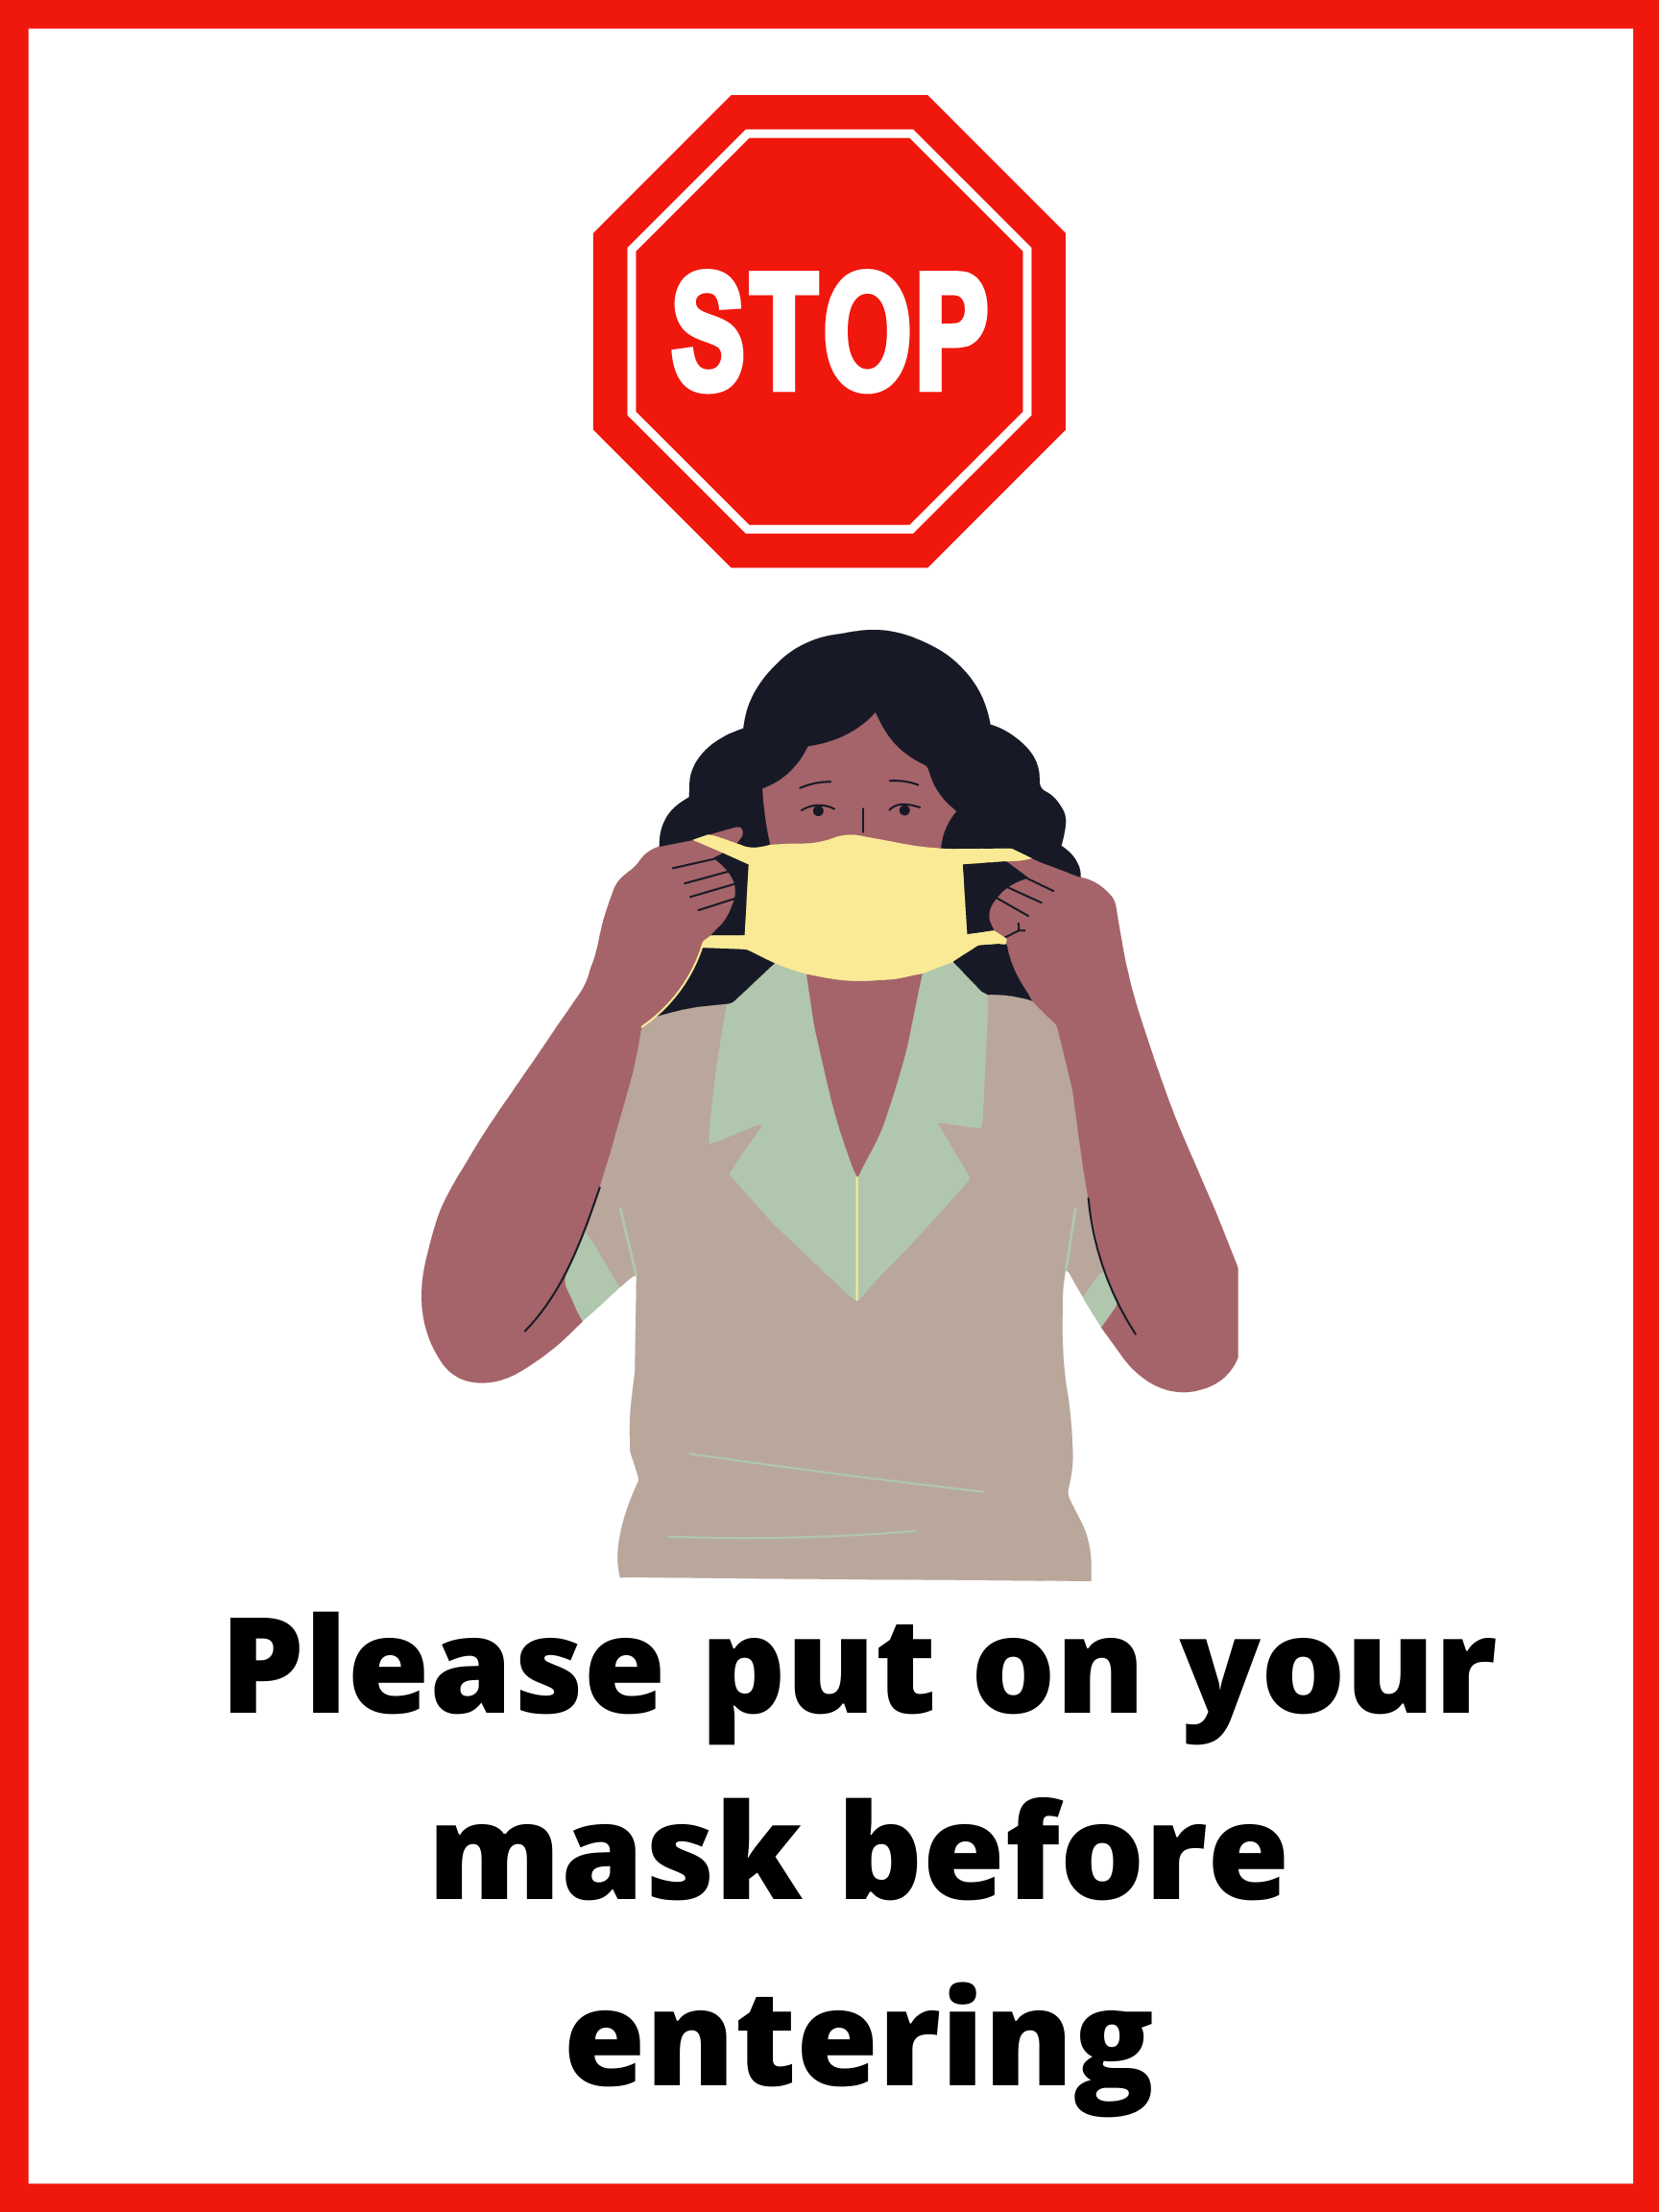 Red stop sign over a woman putting on a mask with text underneath saying Please put on your mask before entering